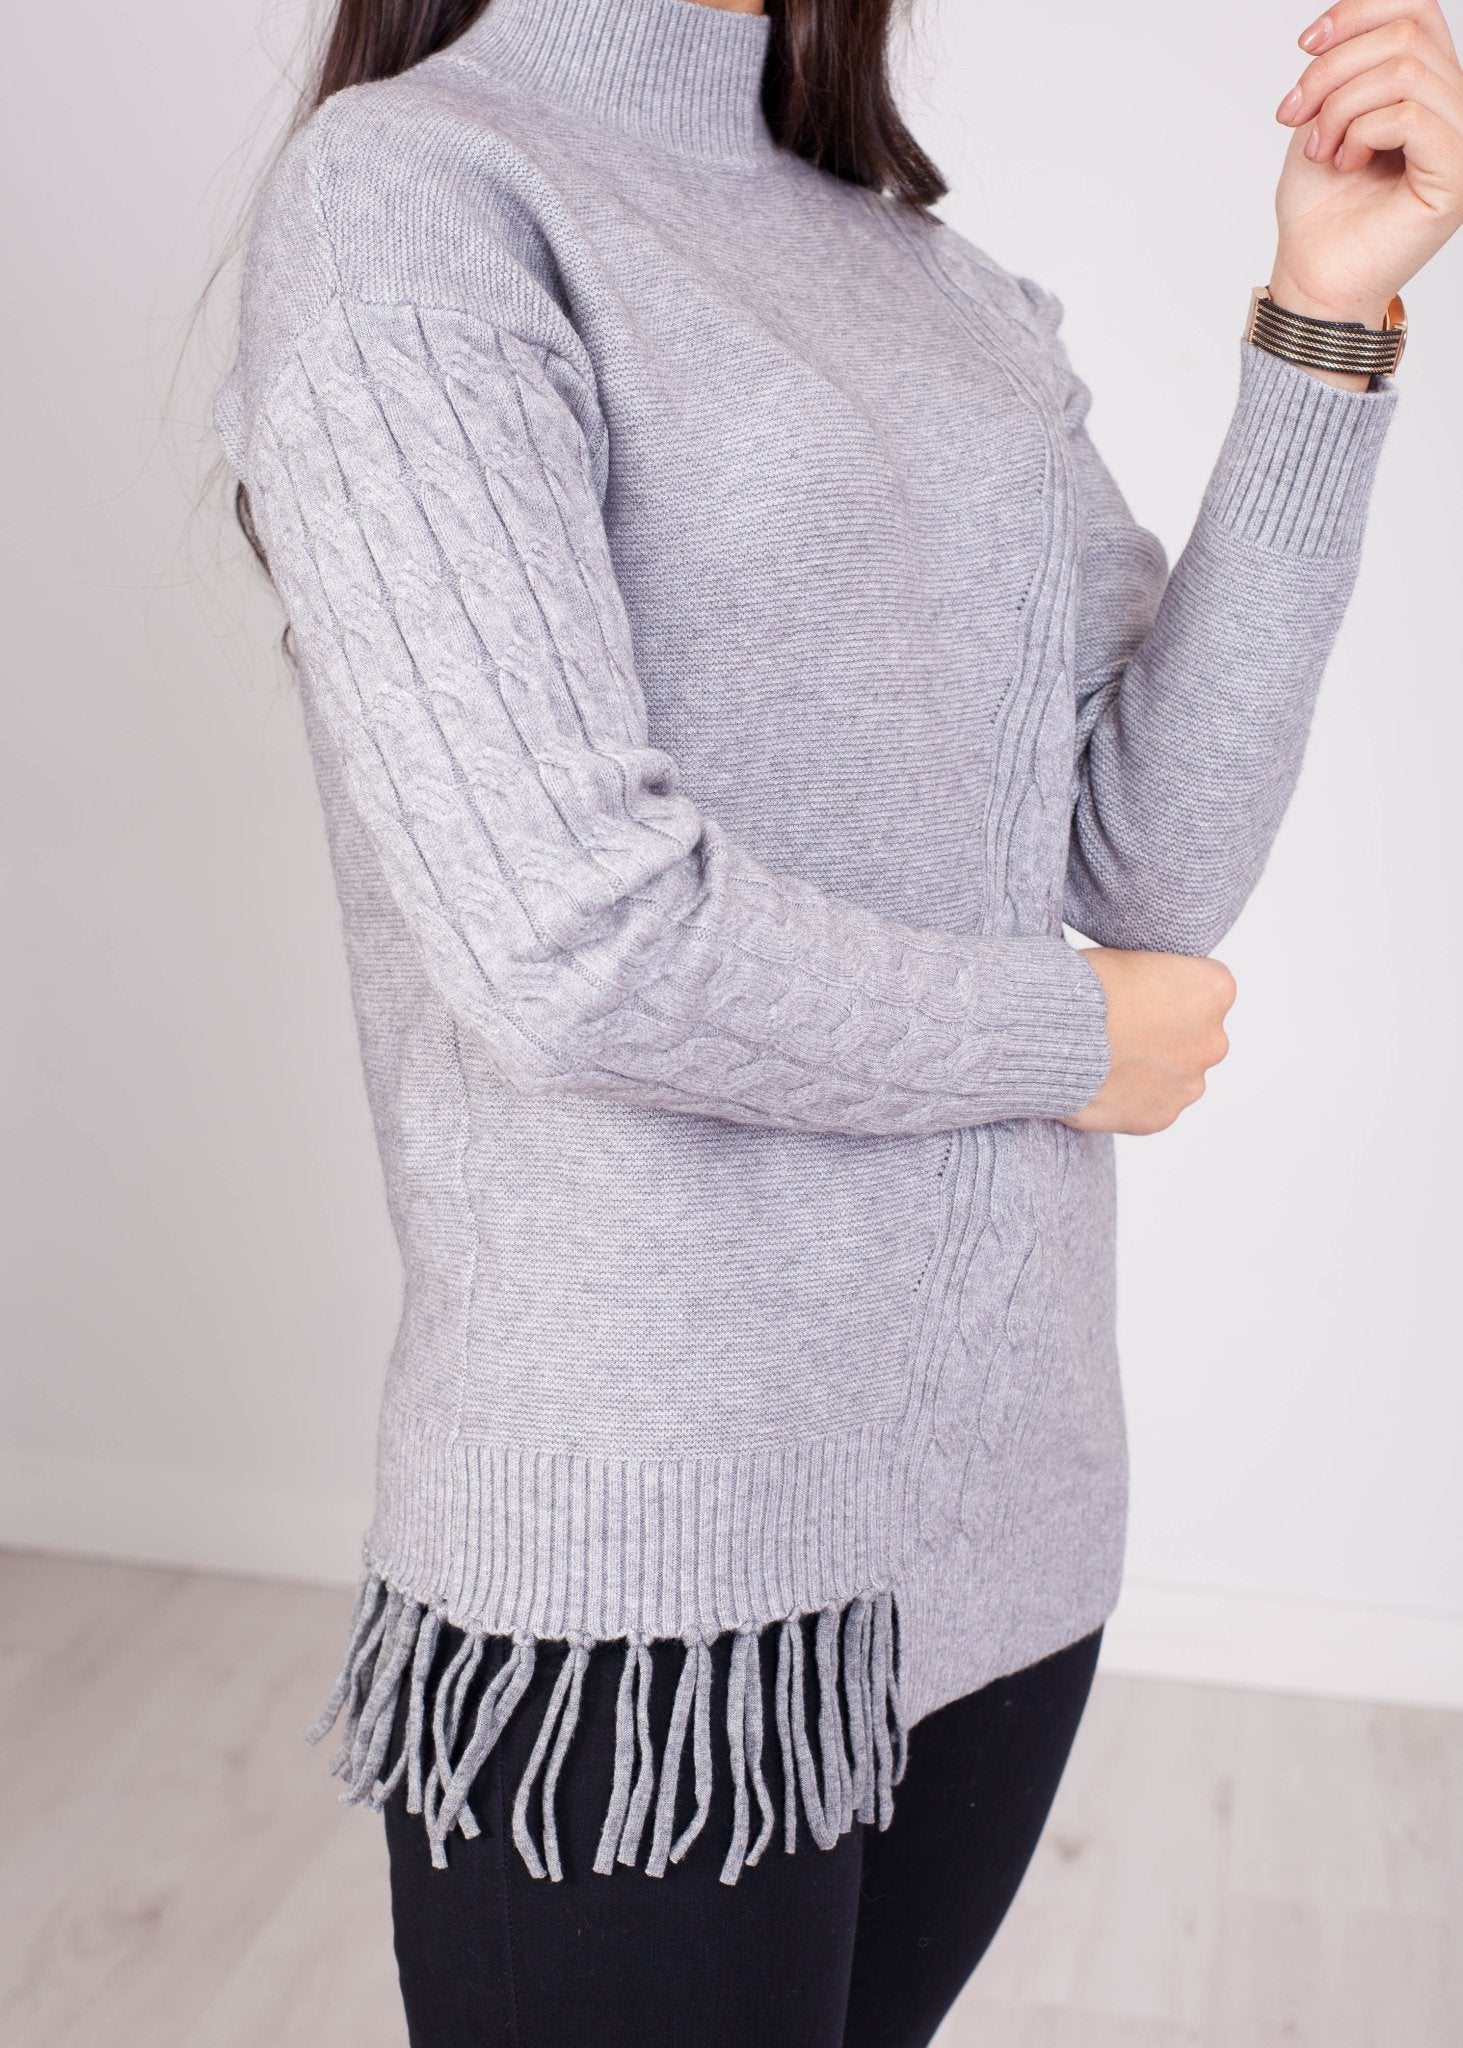 Penny Fringed Jumper In Grey - The Walk in Wardrobe